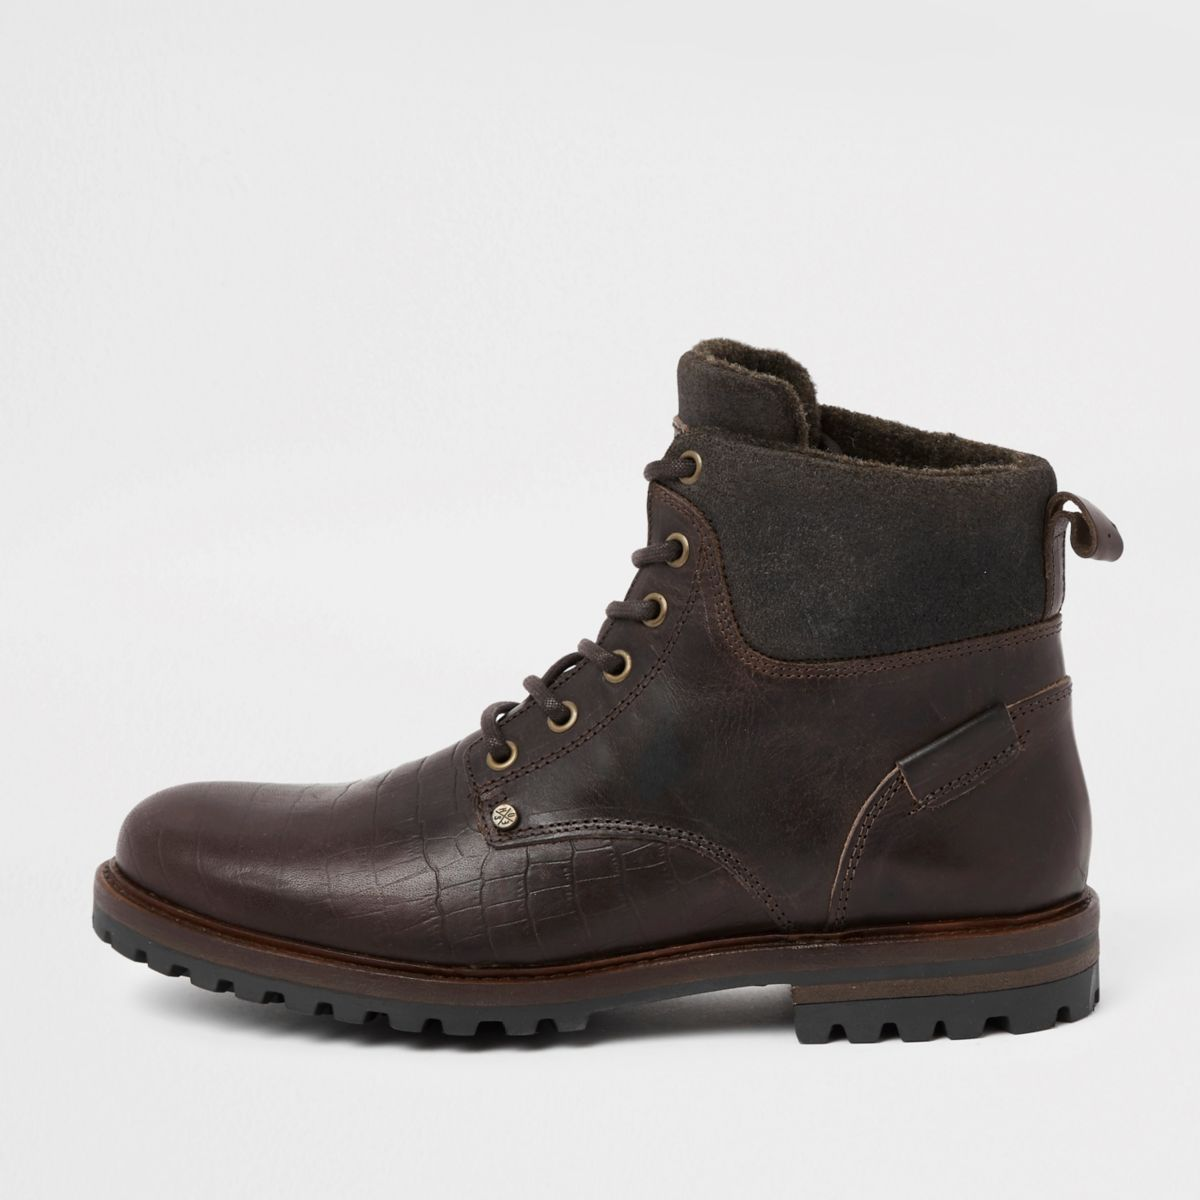 Brown leather croc embossed boots